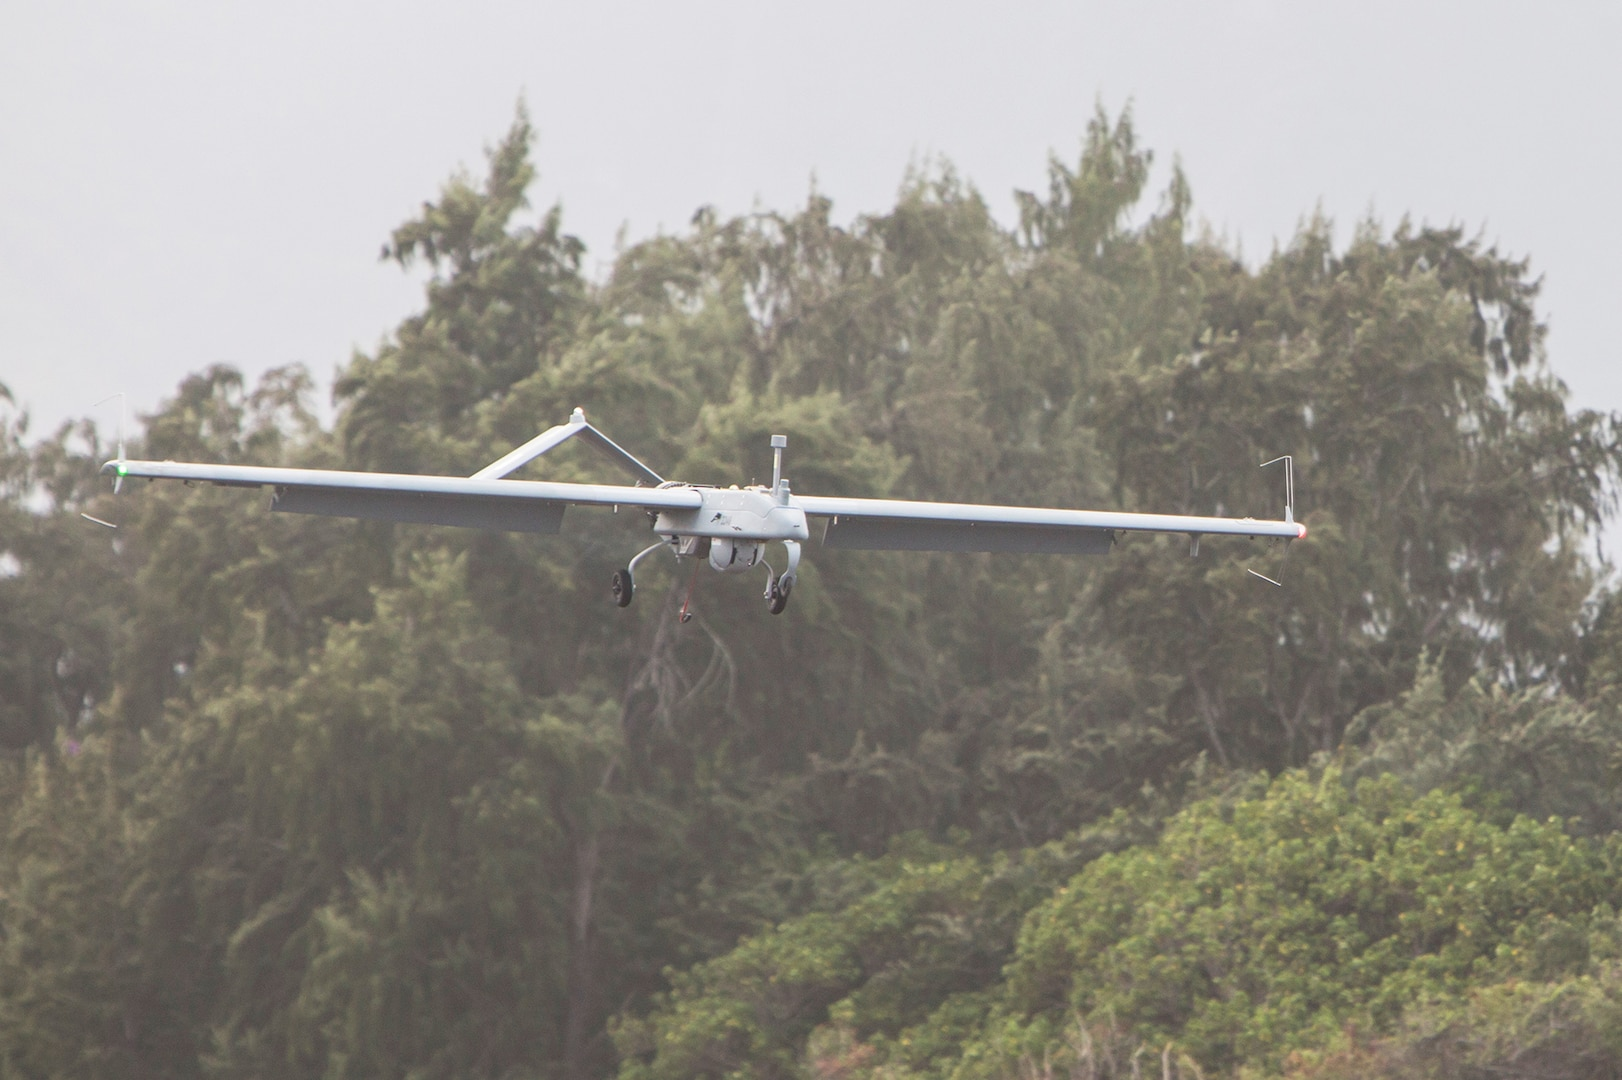 VMU-3 tests ability to fly in system and launch UAV within hours